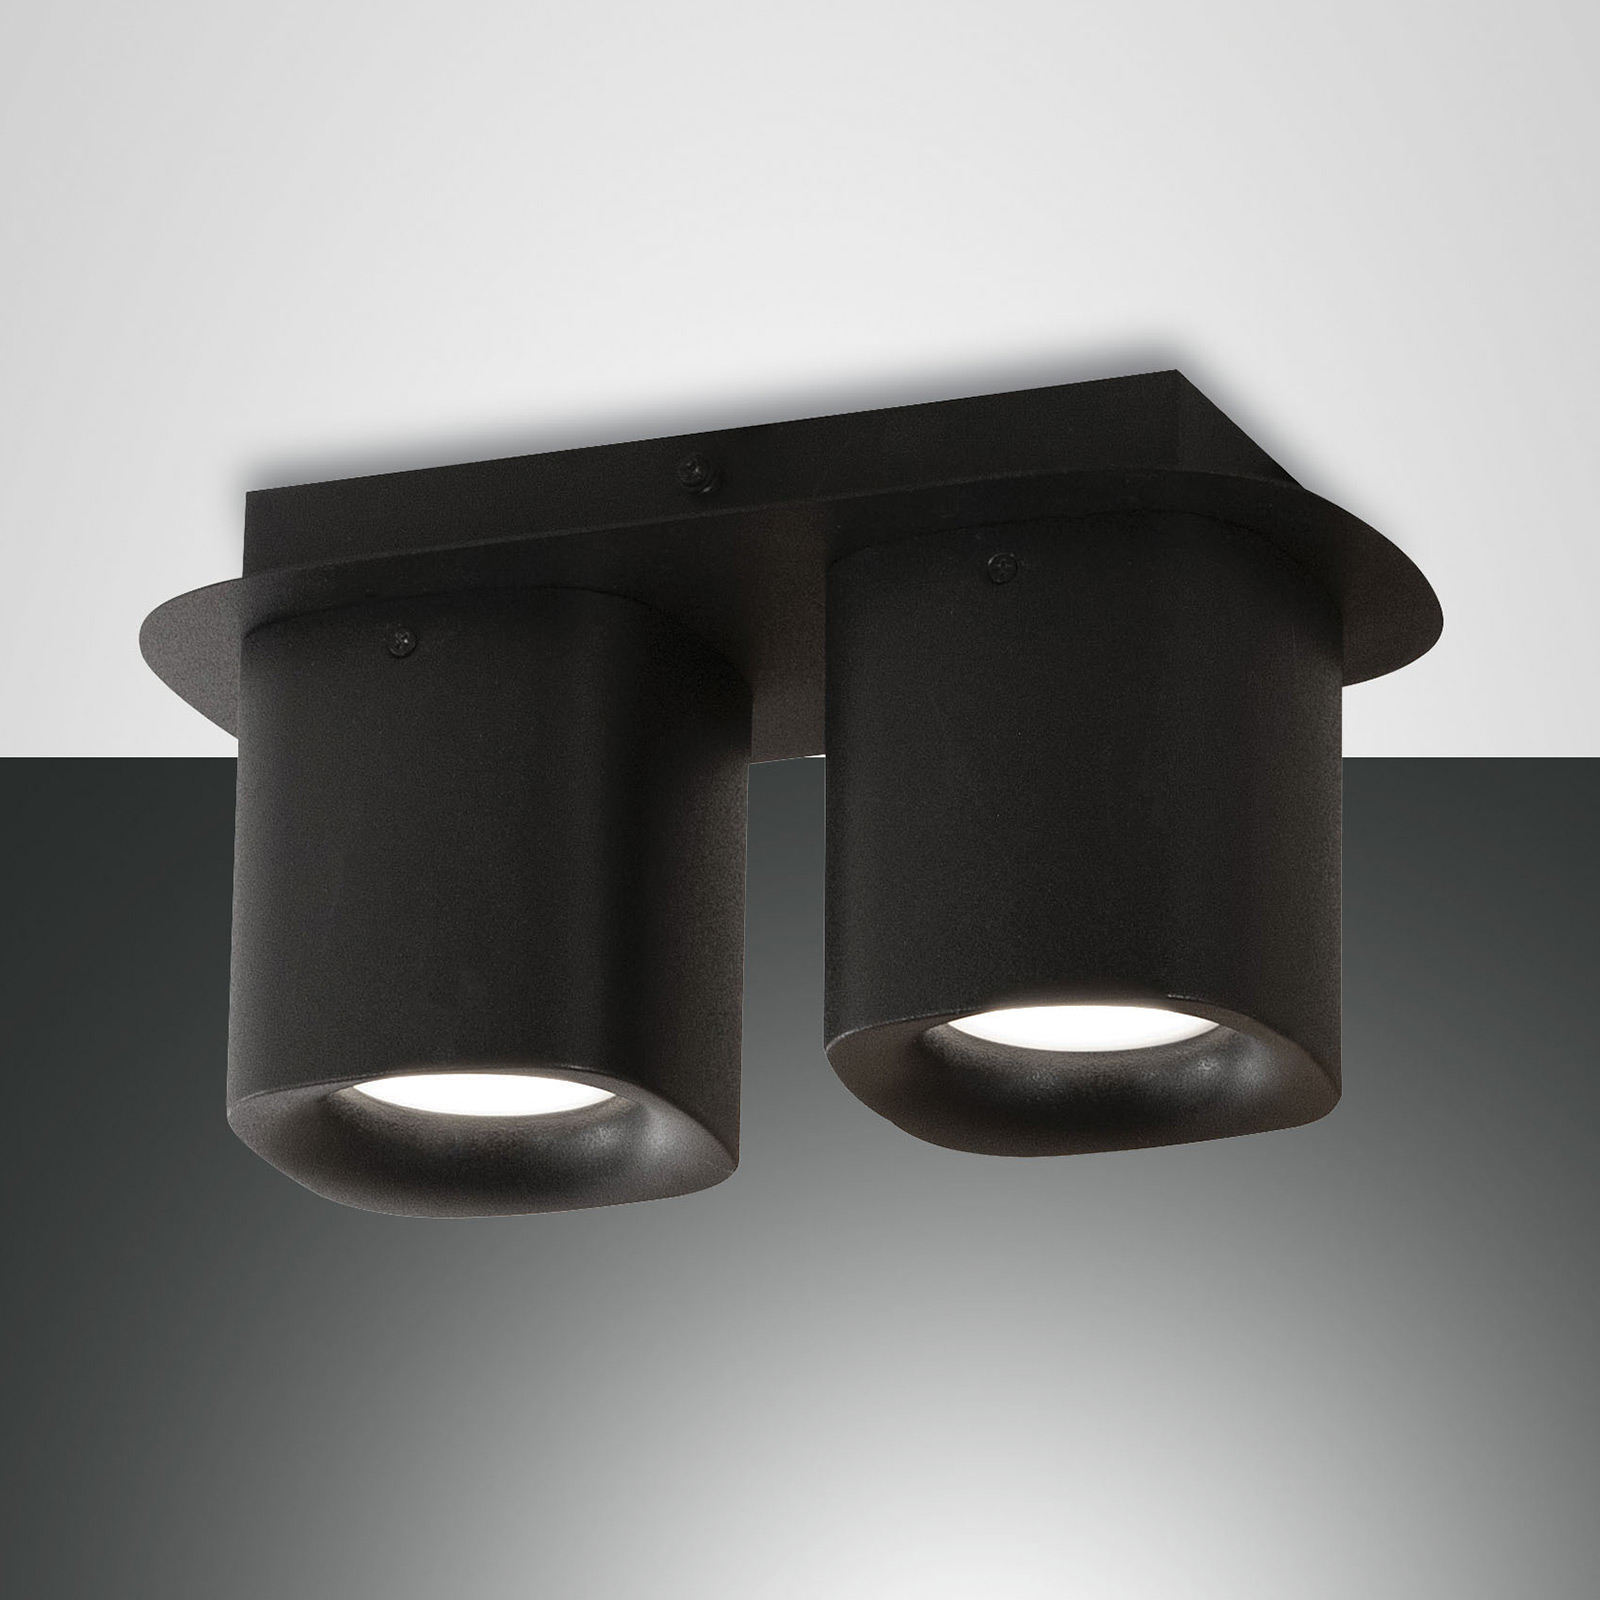 Plafondlamp Smooth, 2-lamps, zwart